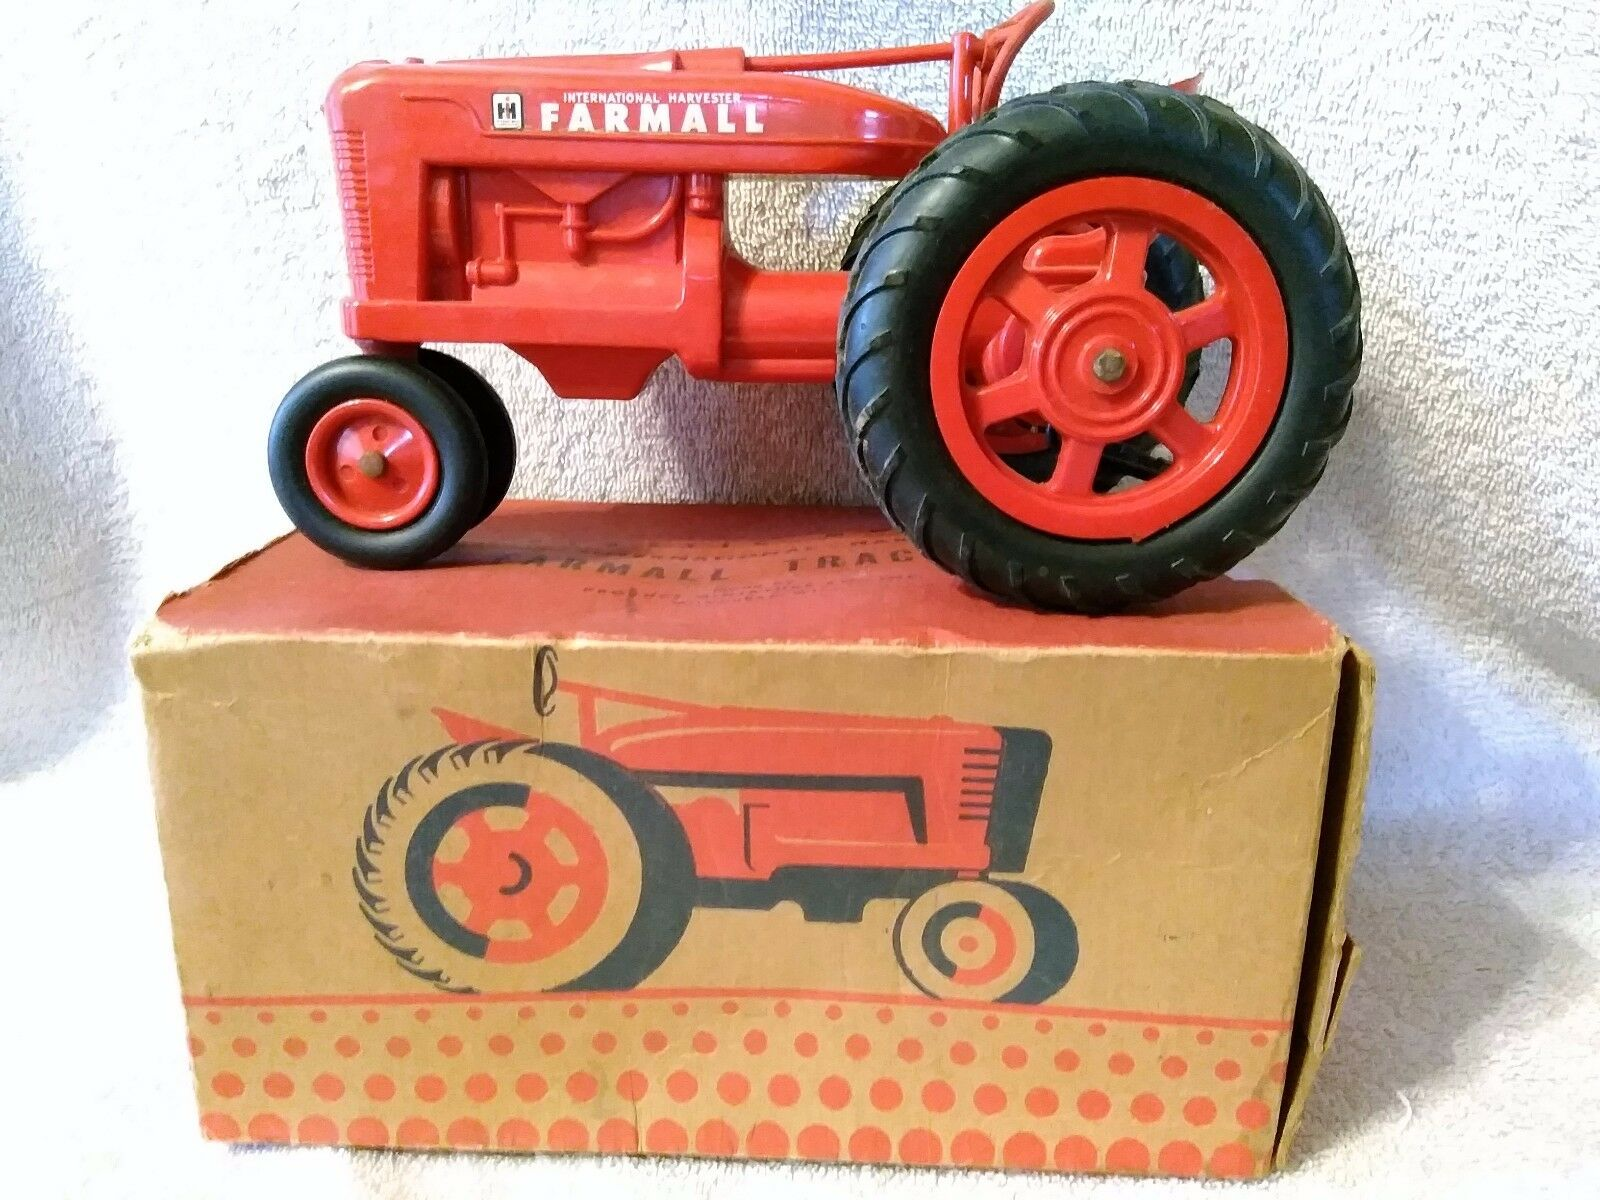 Product Miniatures Plastic Plastic Plastic International Harvester Farmall 'M' 1 16 scale W  Box 200307